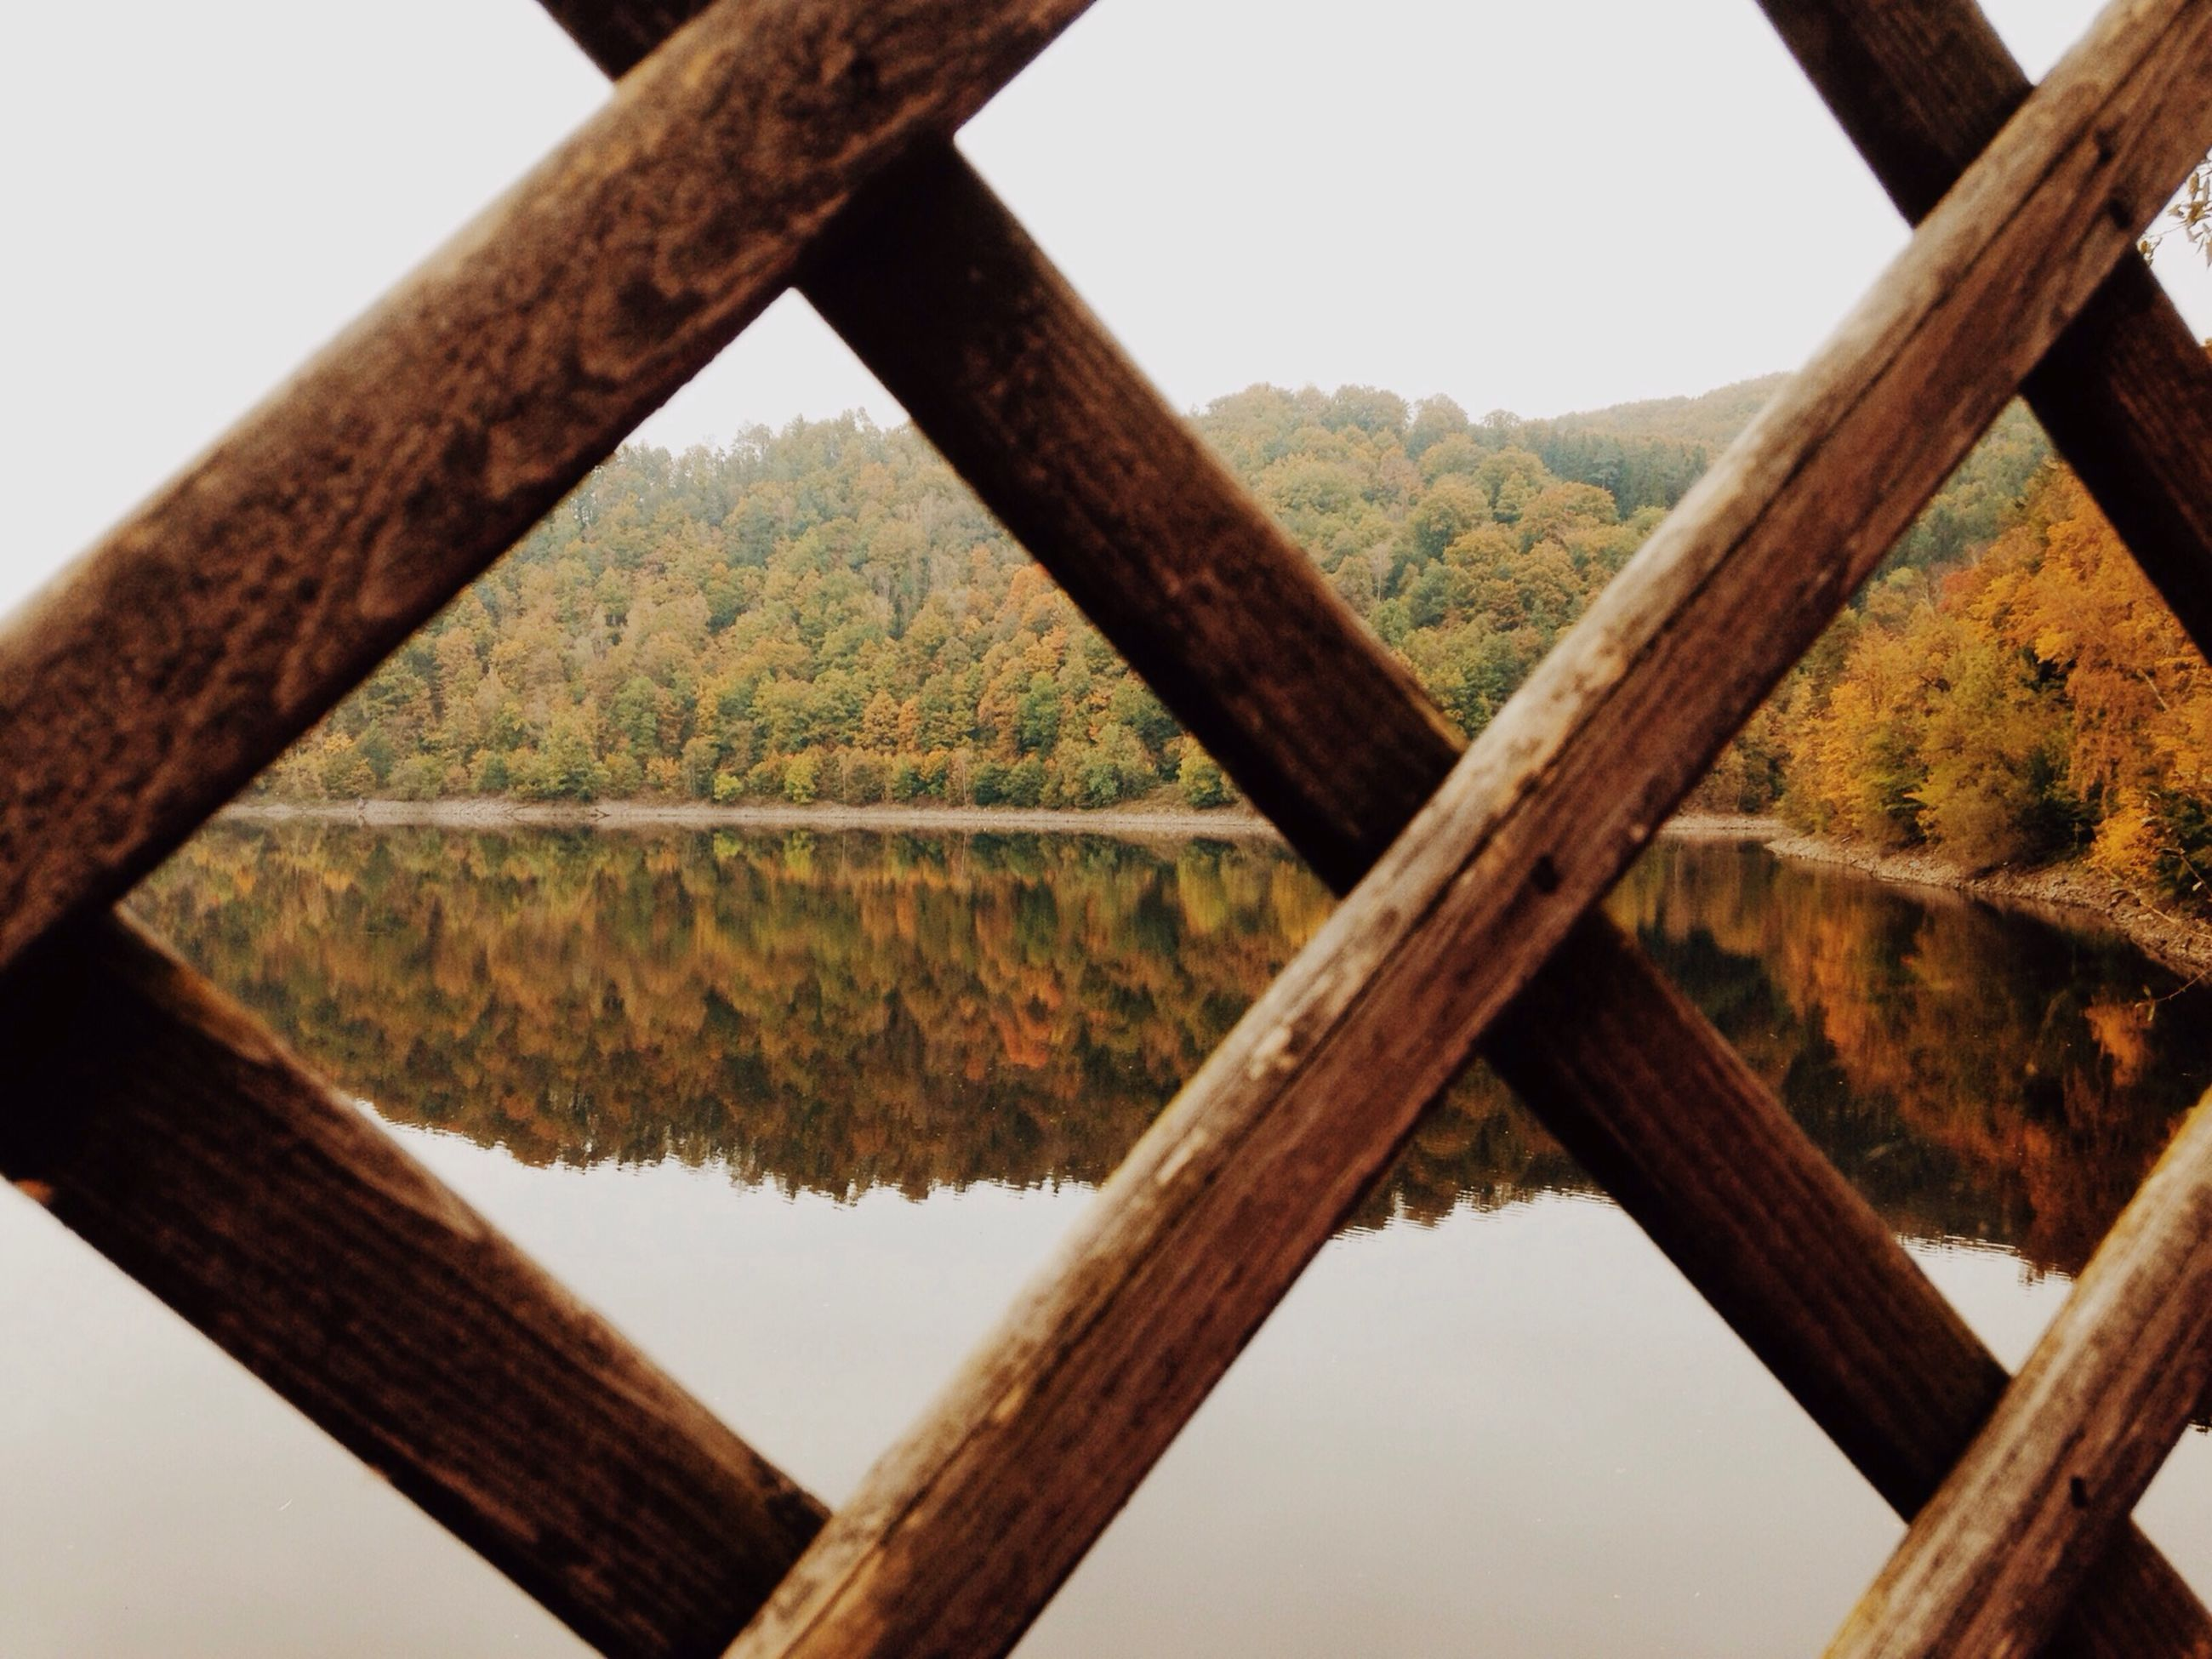 Scenic view of lake seen through fence